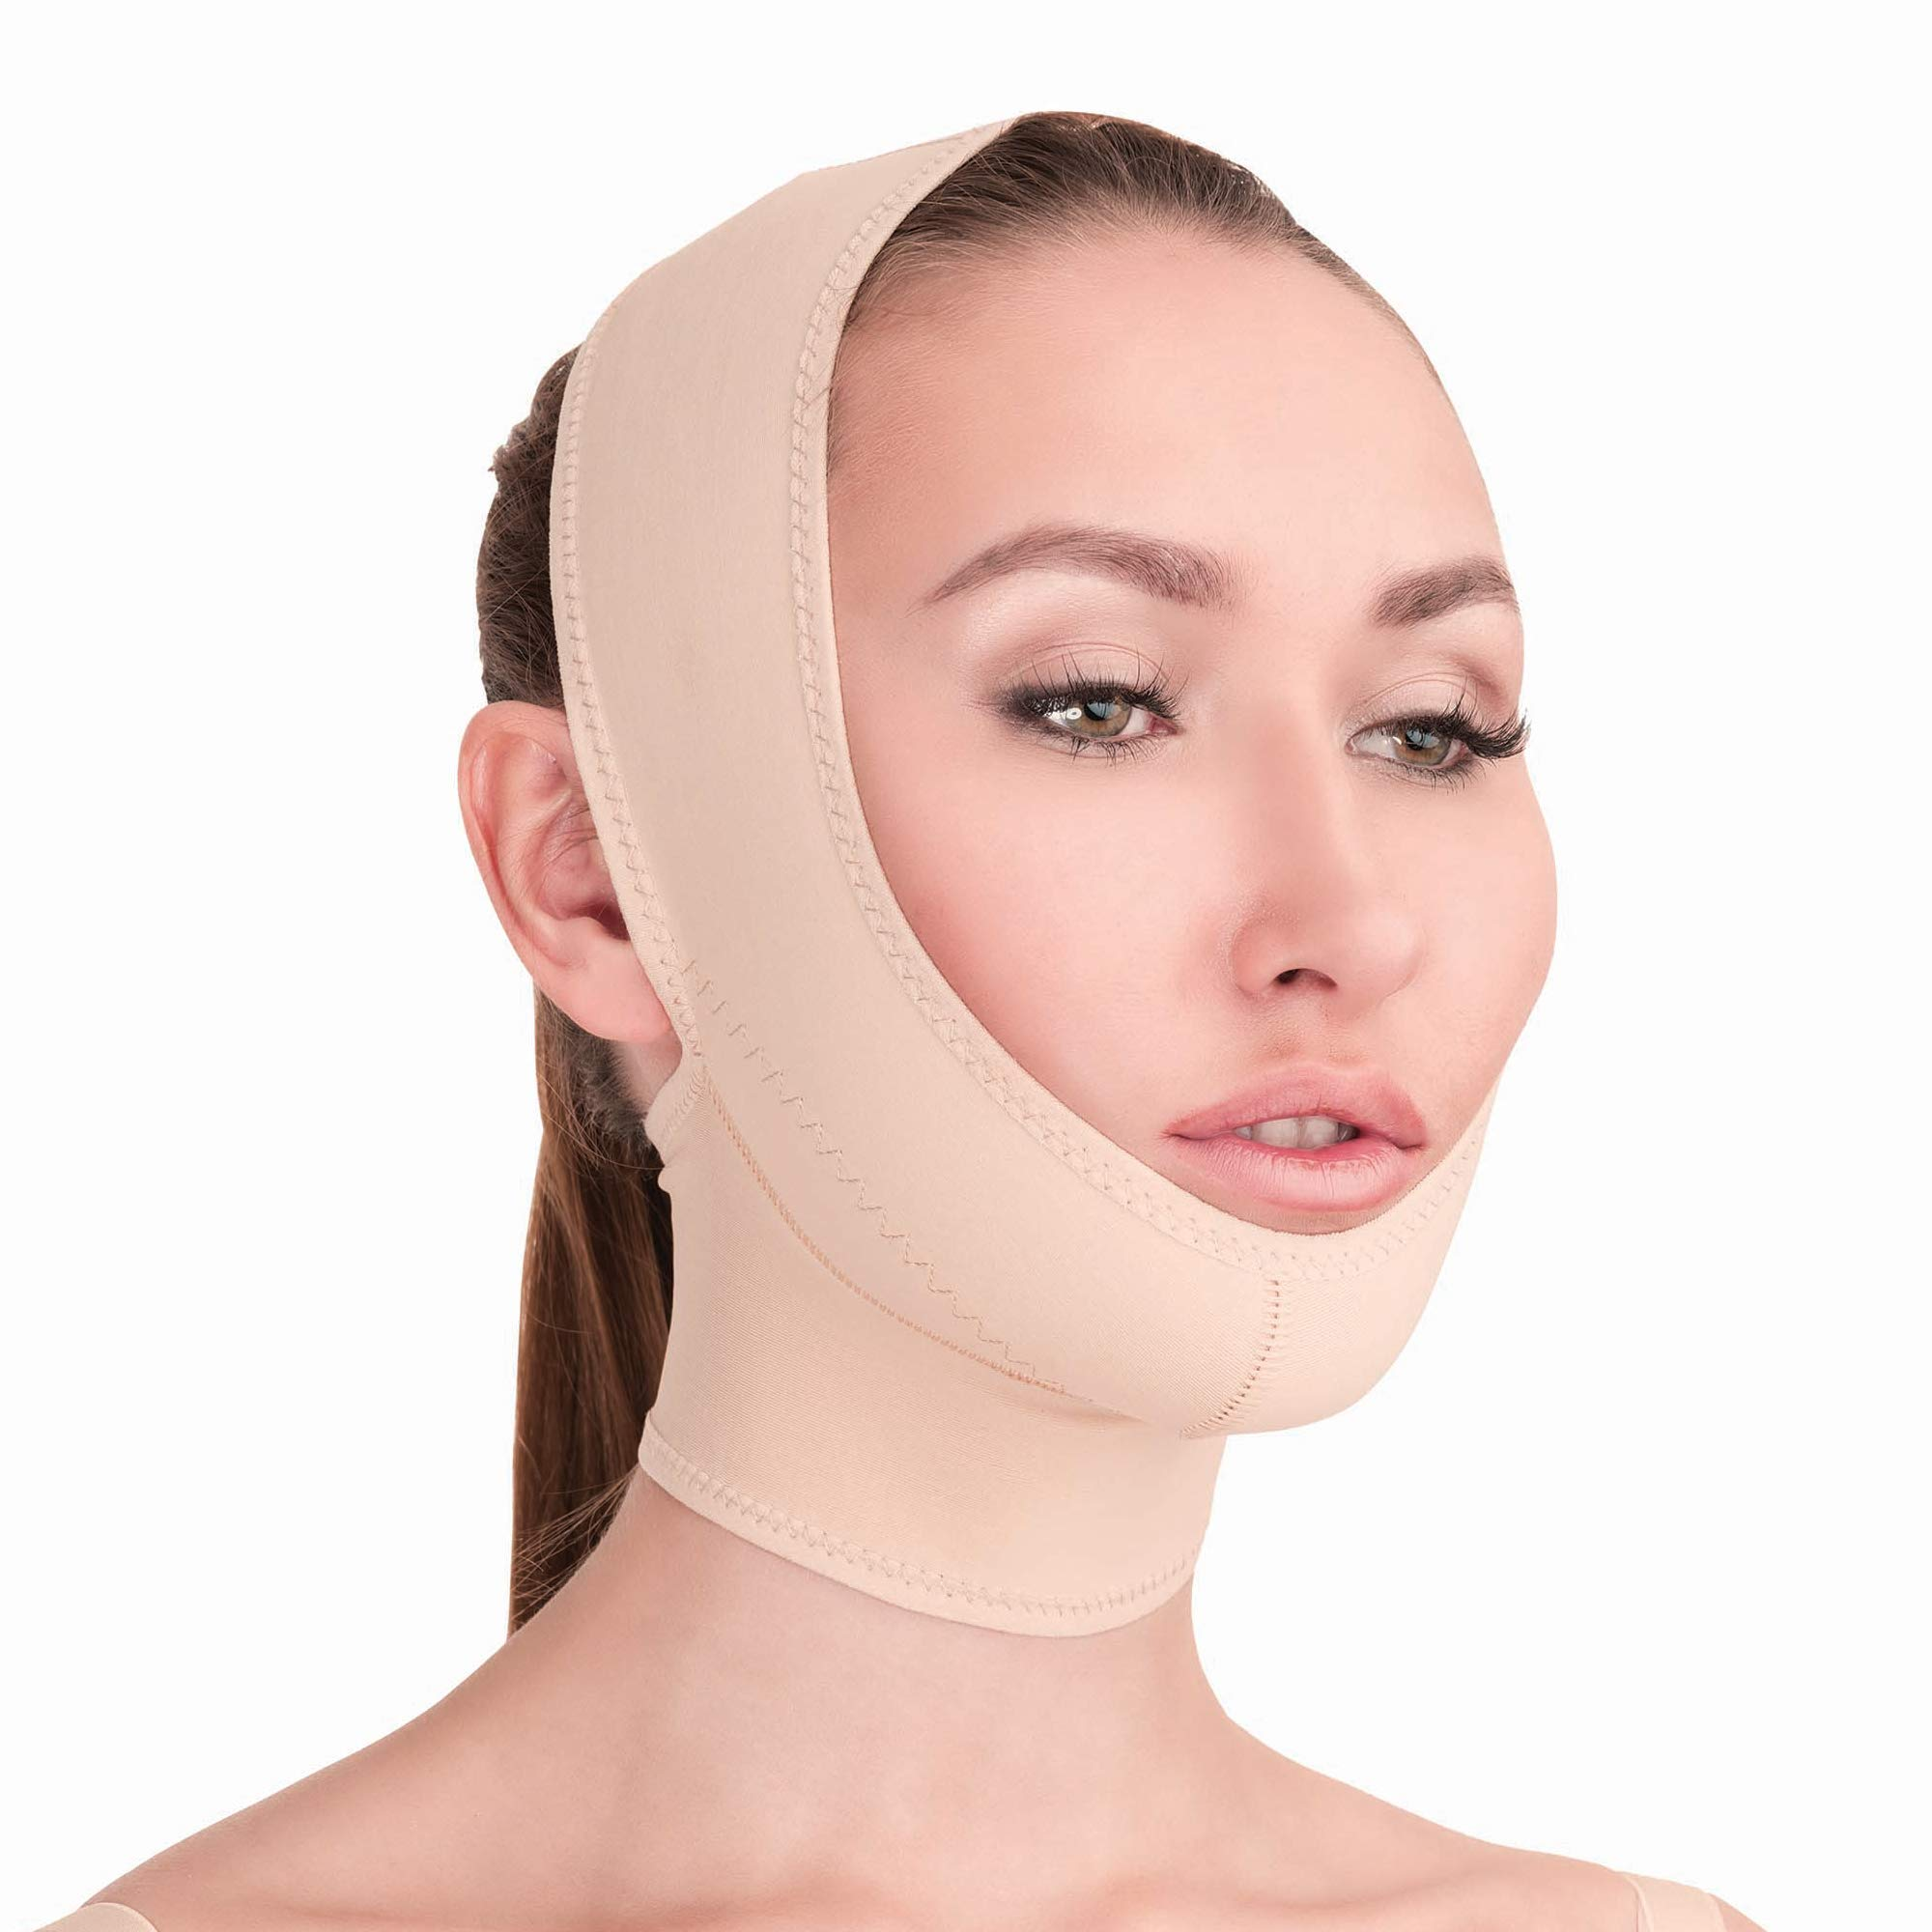 Post Surgical Chin Strap Bandage for Women - Neck and Chin Compression Garment Wrap - Face Slimmer, Jowl Tightening, Chin Lifting Medical Anti Aging Mask (Beige, L) by V T VARITEKS